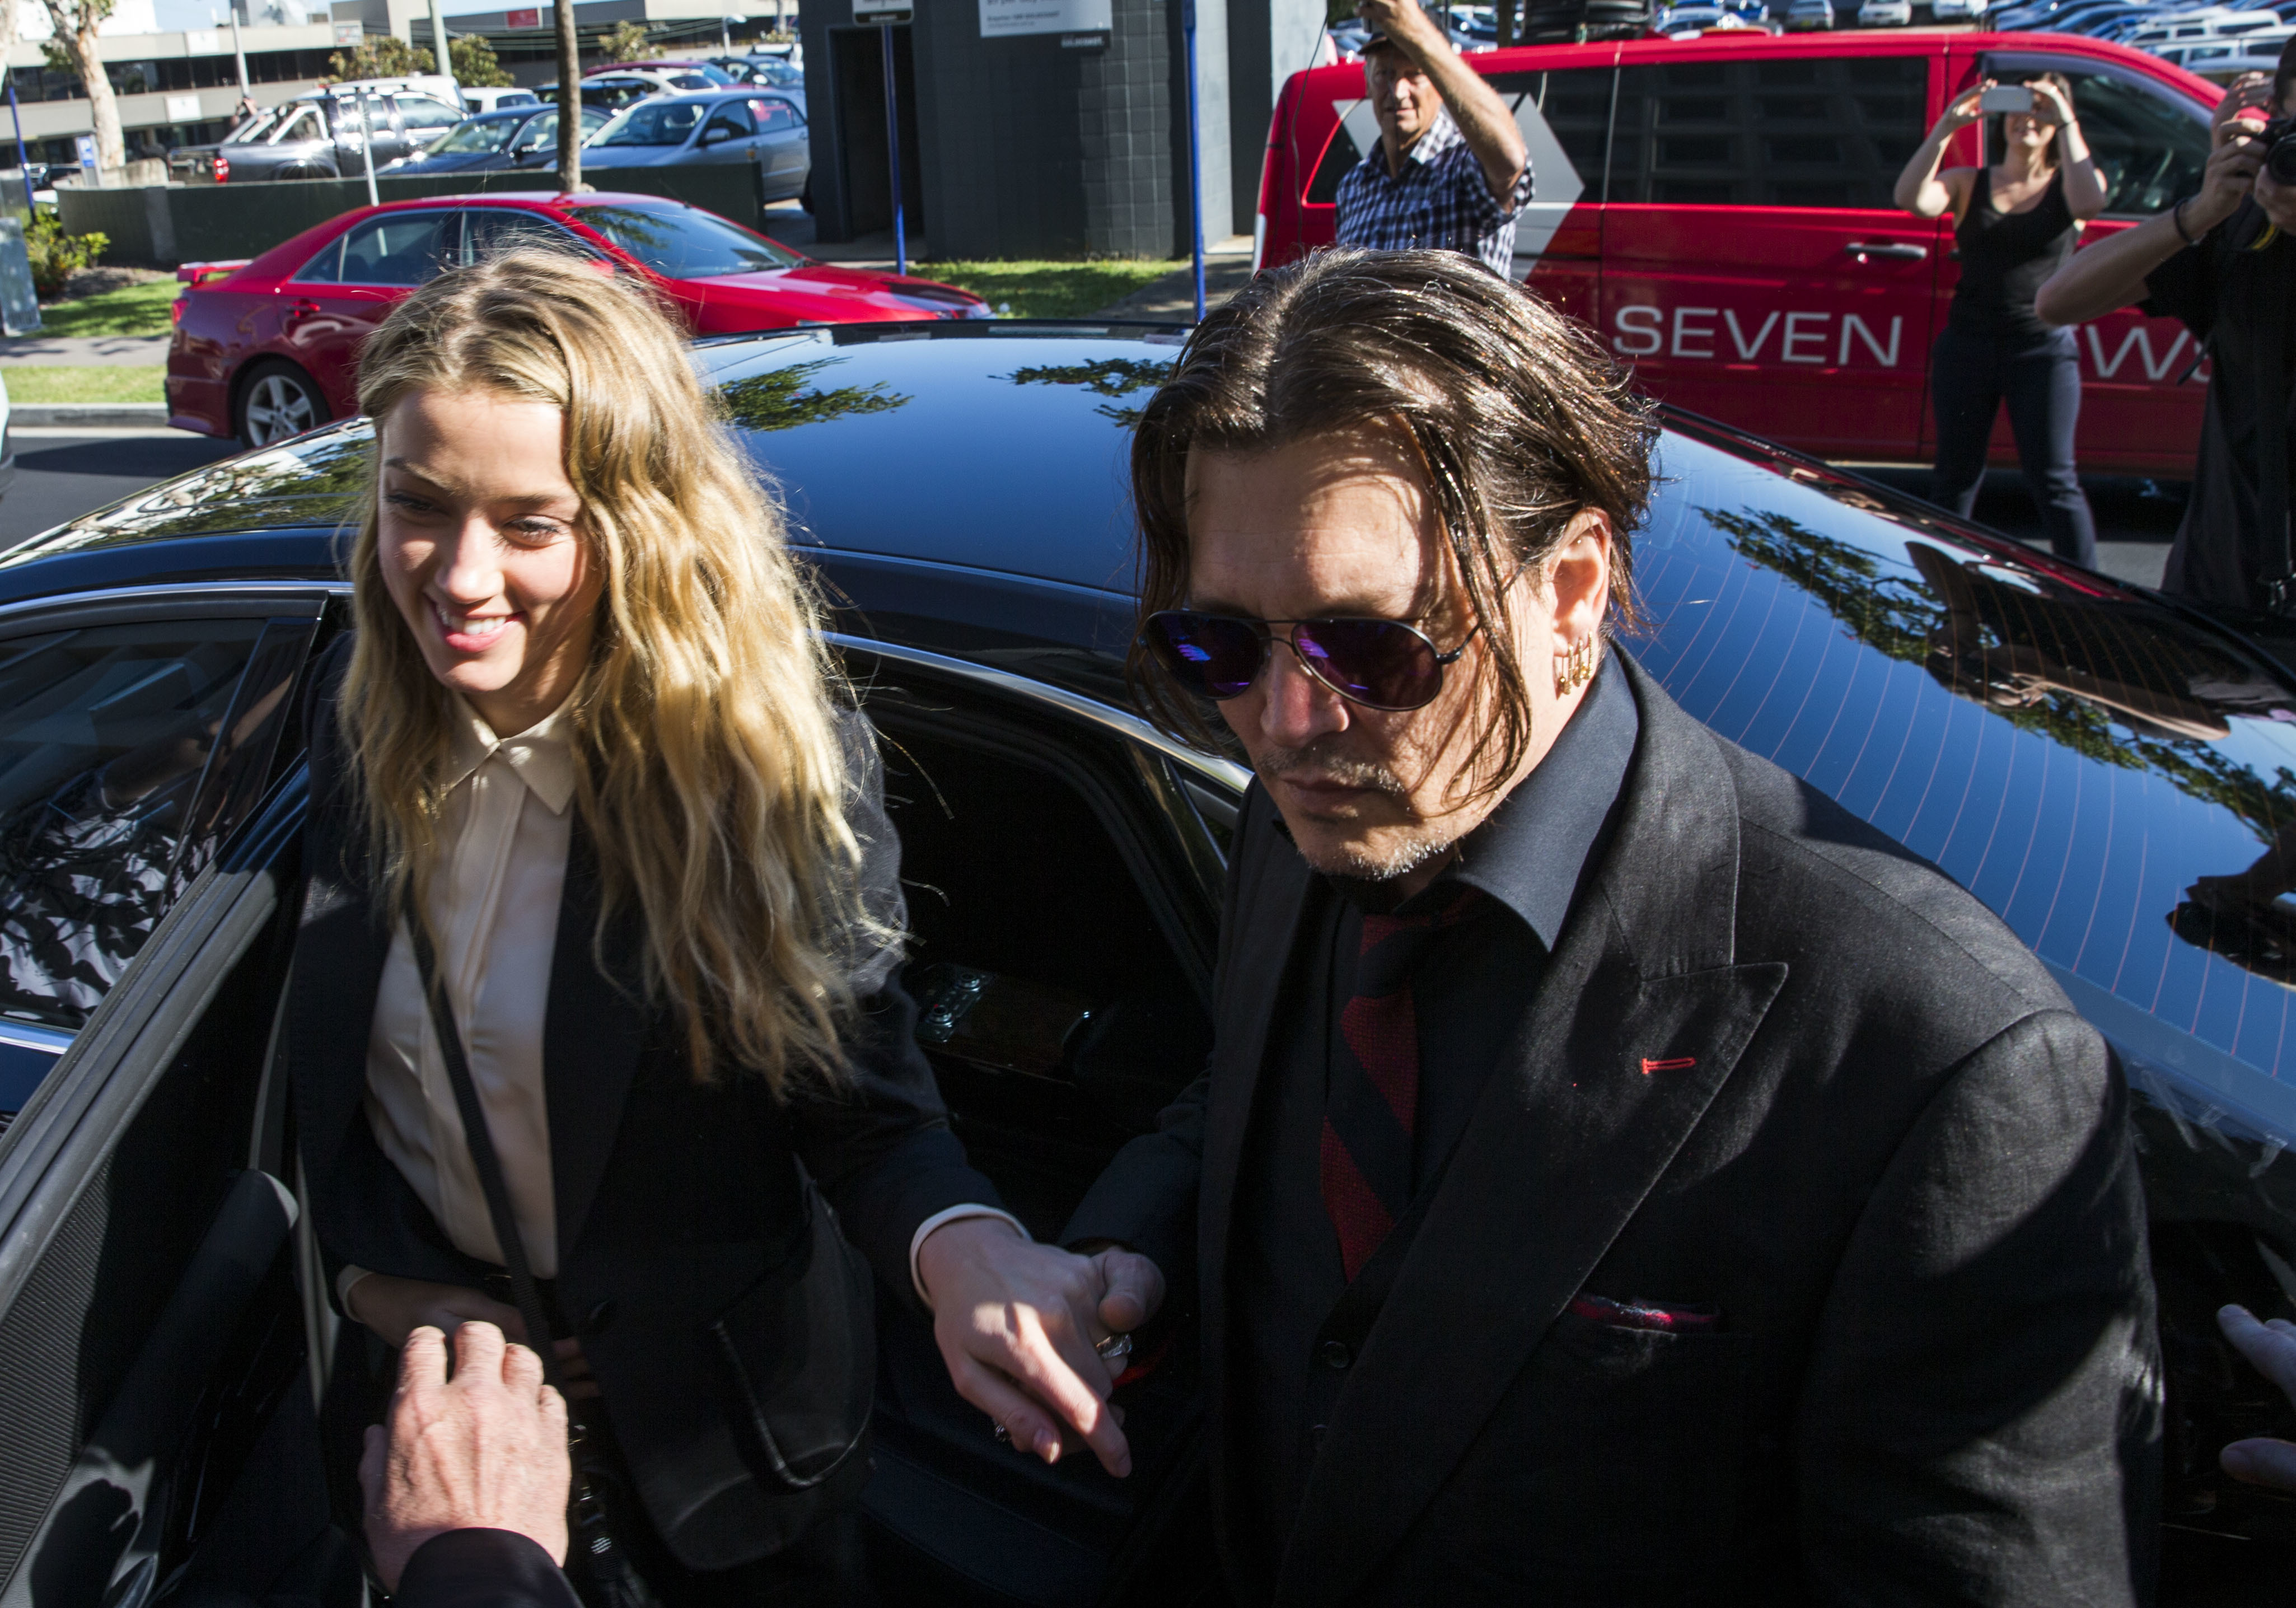 Johnny Depp lines up witnesses to defend him in court against Amber Heard